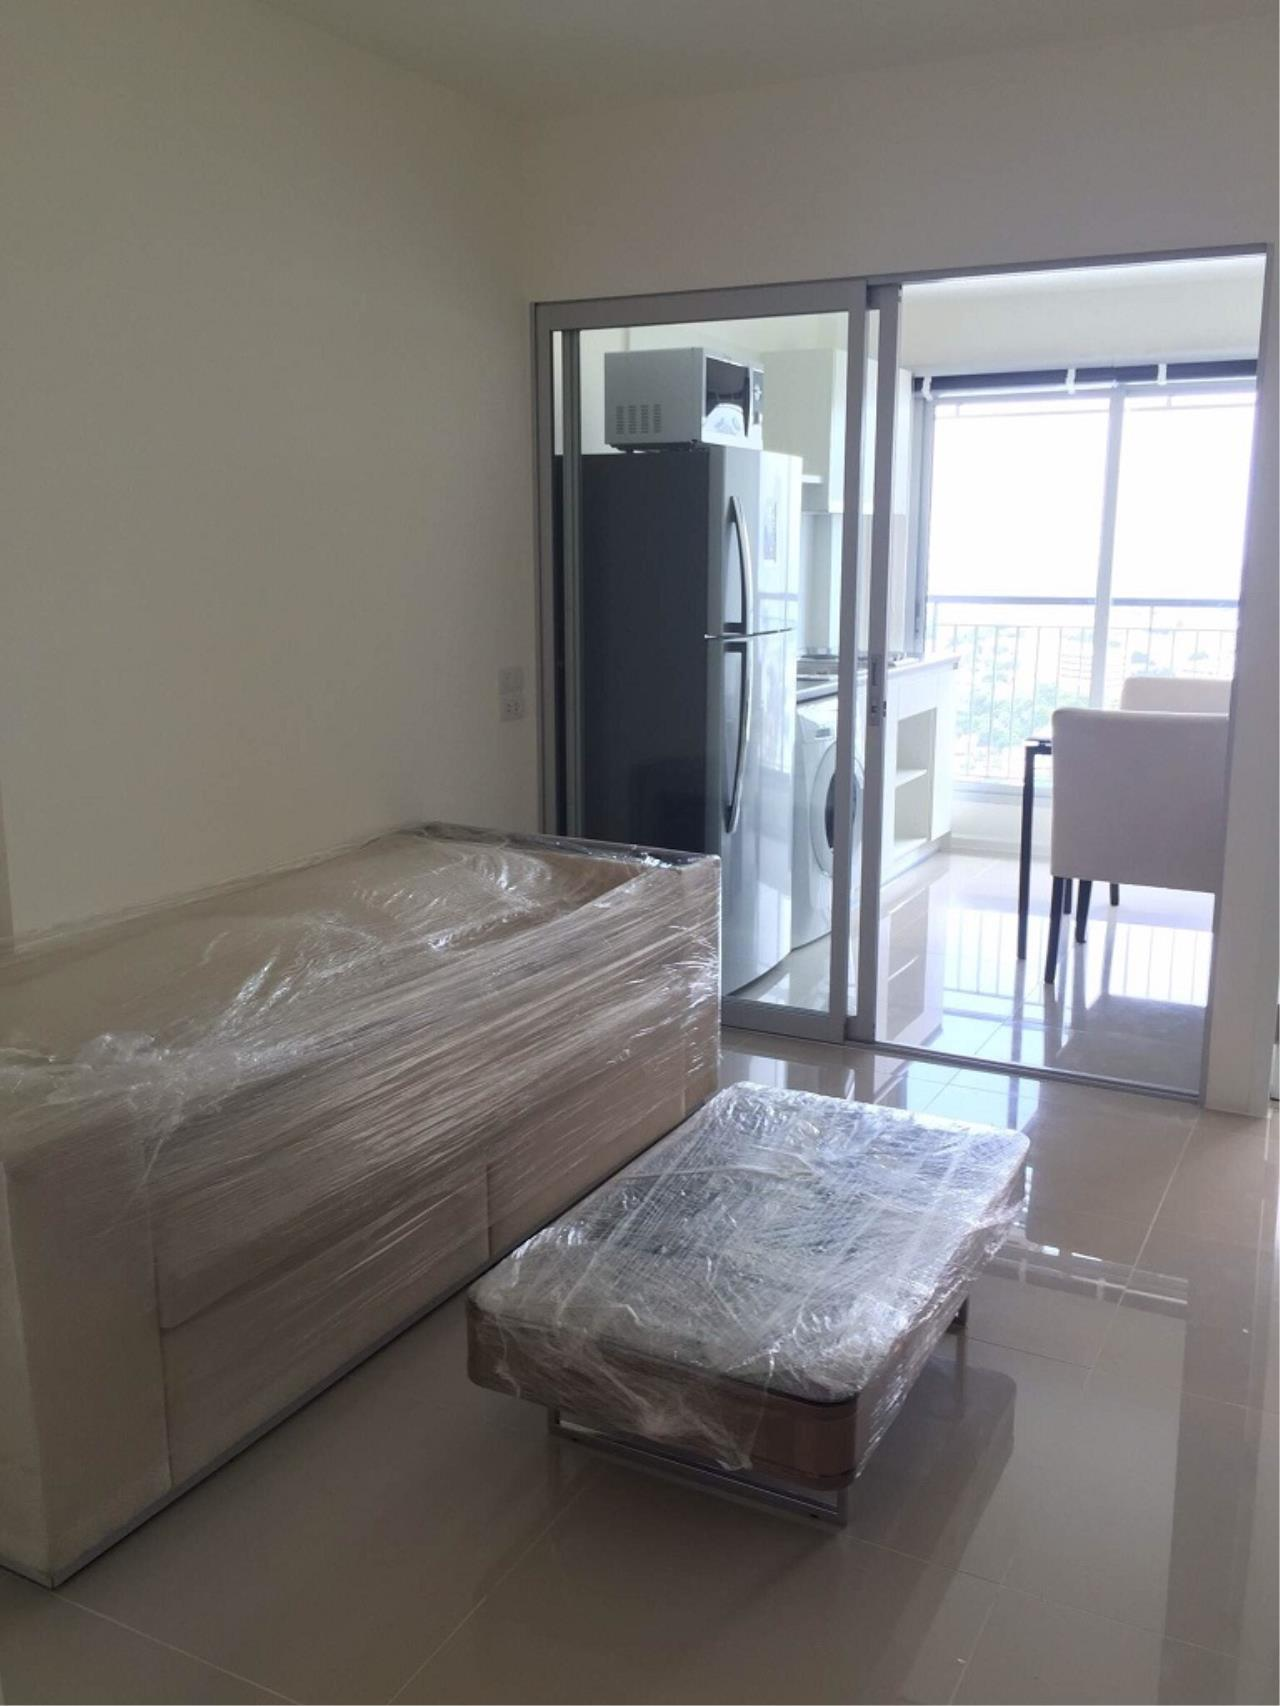 RE/MAX All Star Realty Agency's Aspire Sukhumvit Soi 48 condo rent one/two beds (BTS Phra Khanong) 3